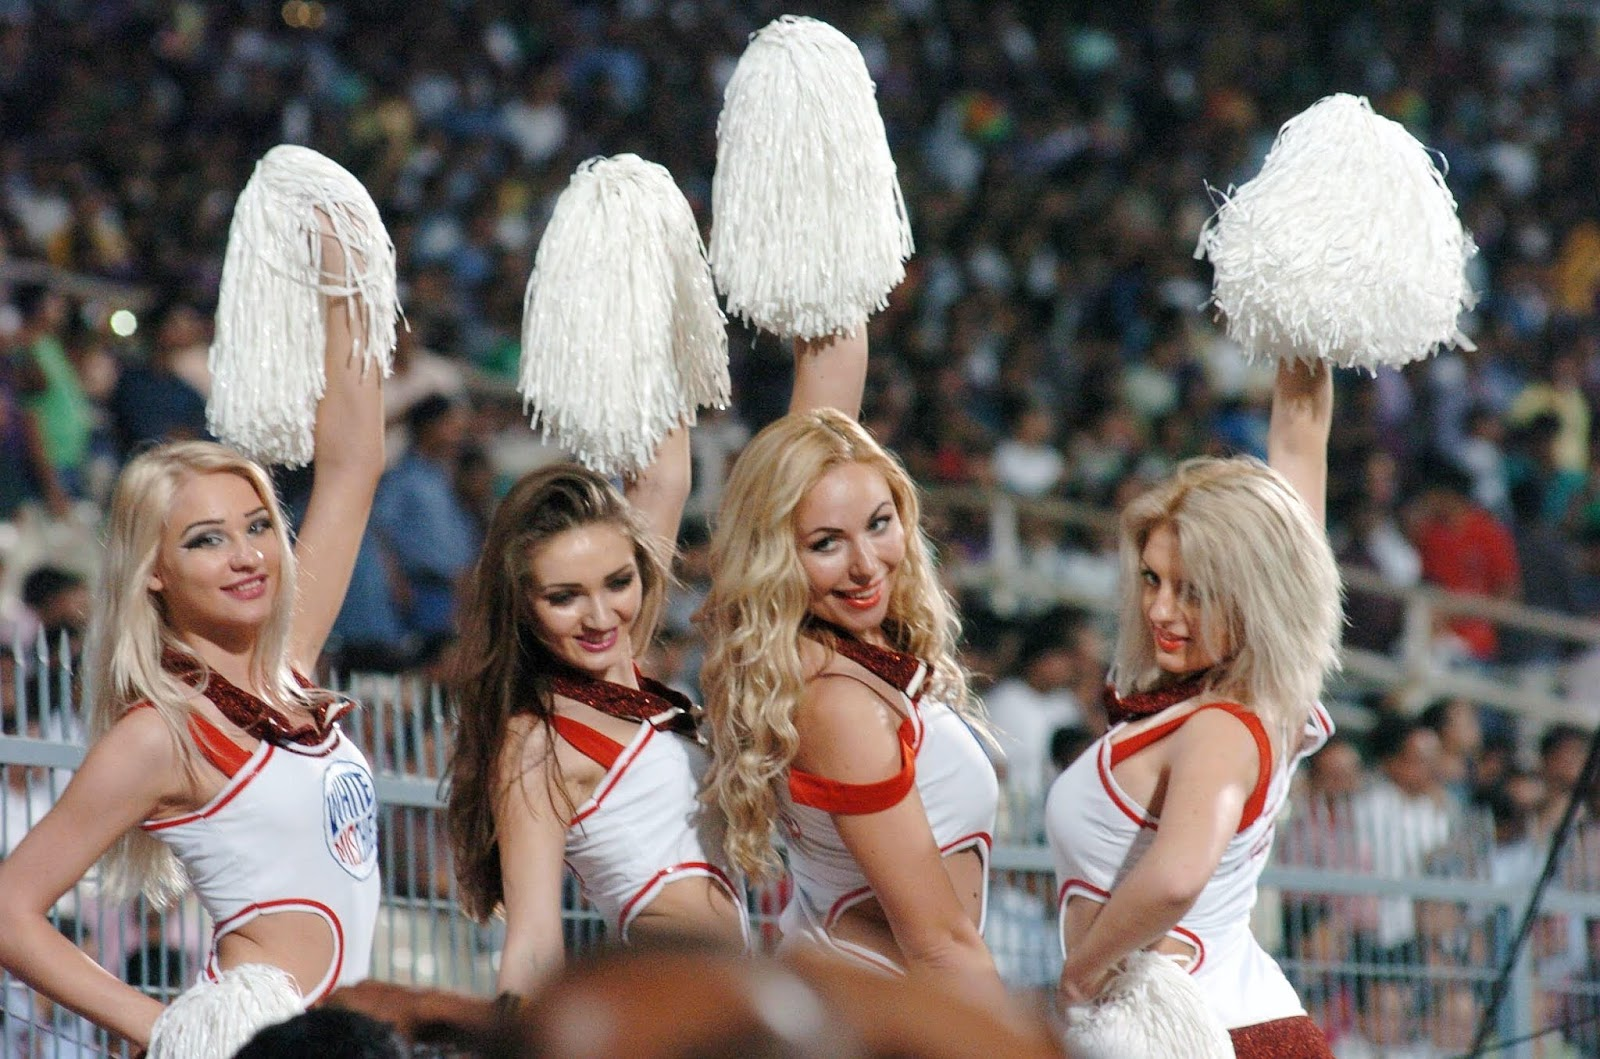 IPL Cheerleaders Salary 2019